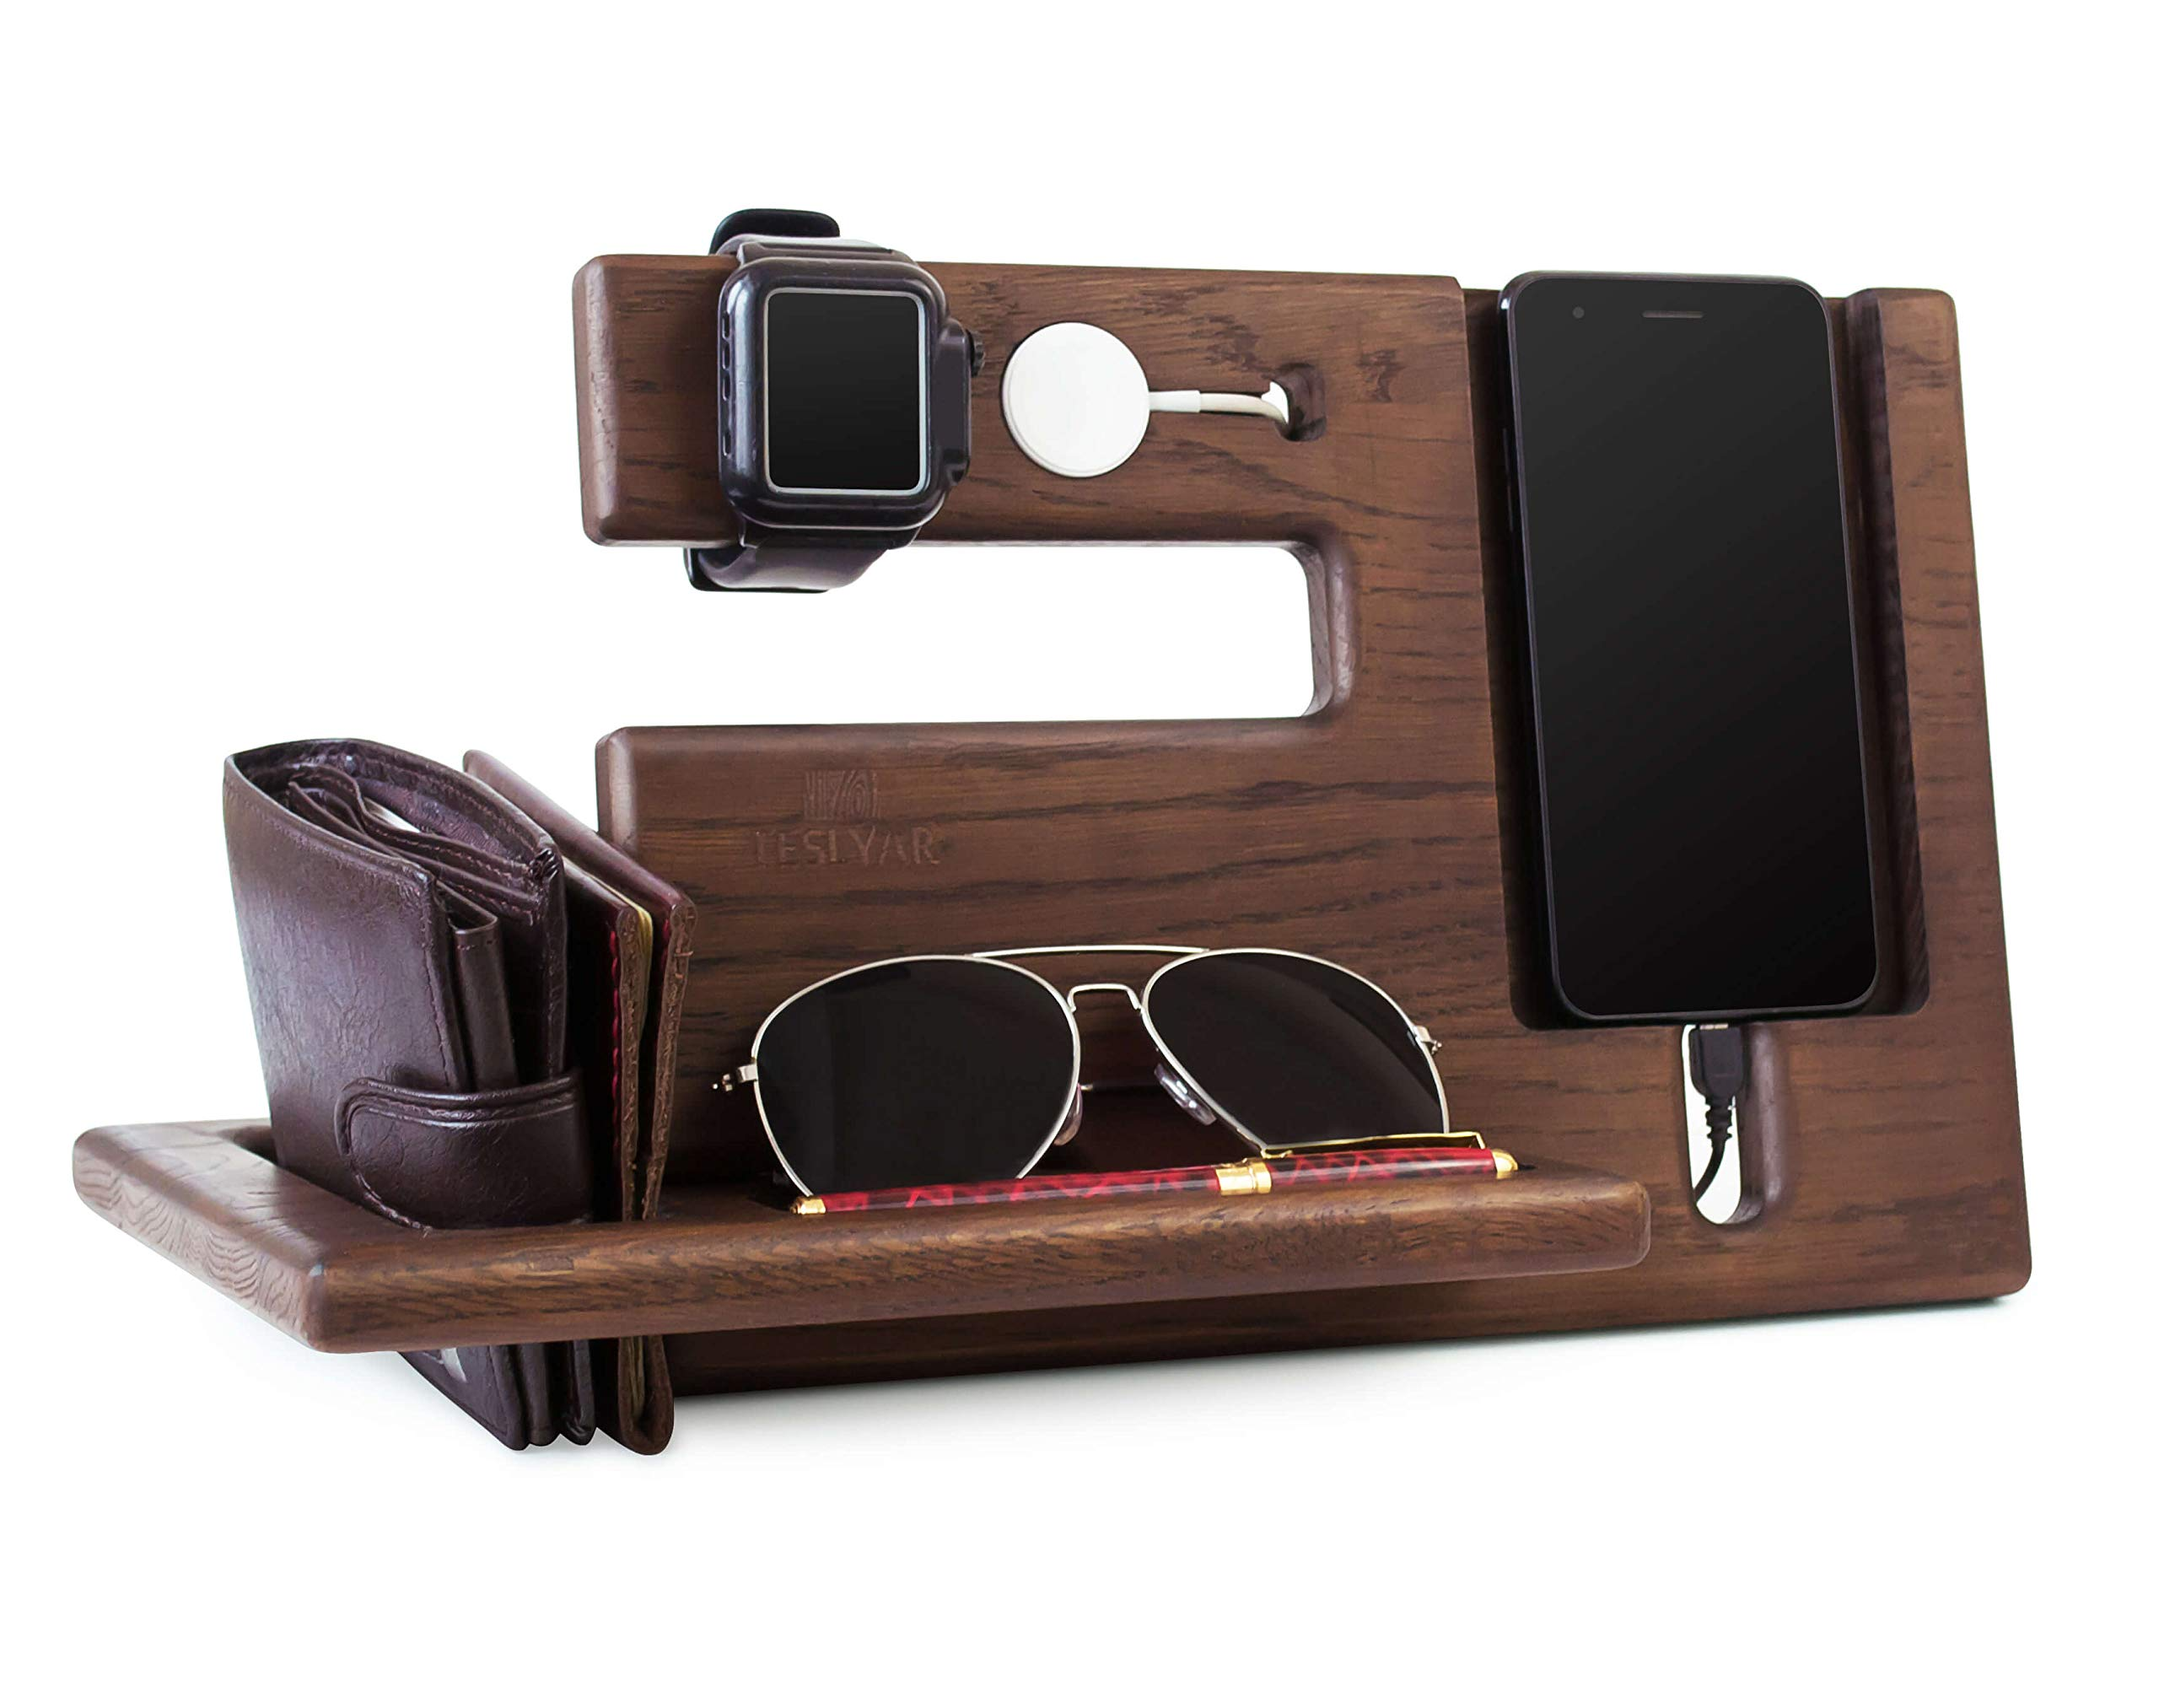 Wood Phone Docking Station Oak Recess Key Holder Wallet Stand Magnetic Watch Charger Slot Organizer Men Gift Husband Wife Anniversary Dad Birthday Nightstand Tablet Father Graduation Male Travel Idea by TESLYAR